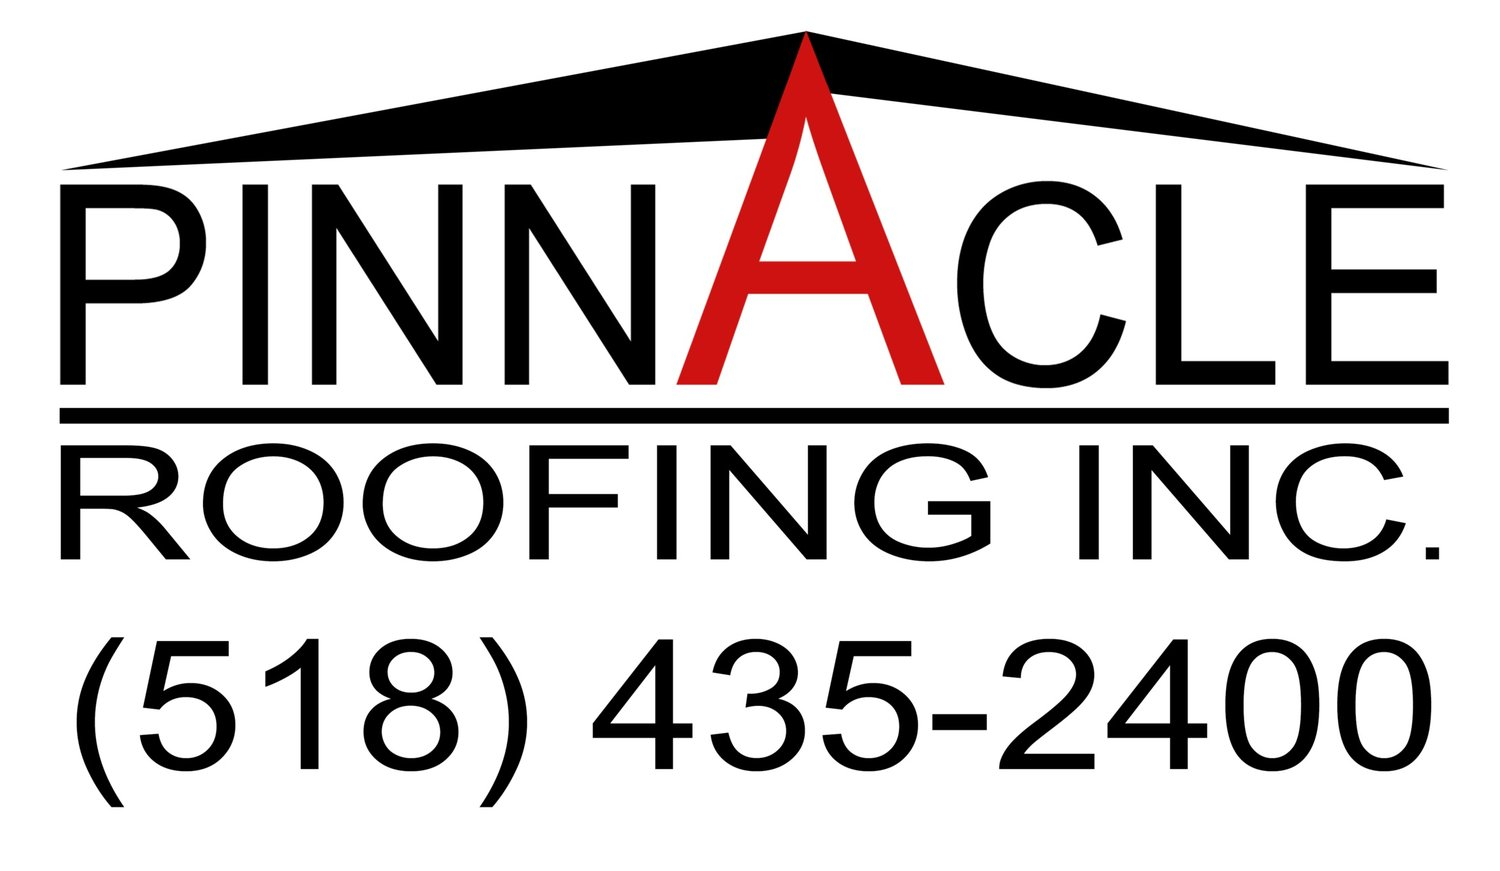 Pinnacle Roofing Inc.